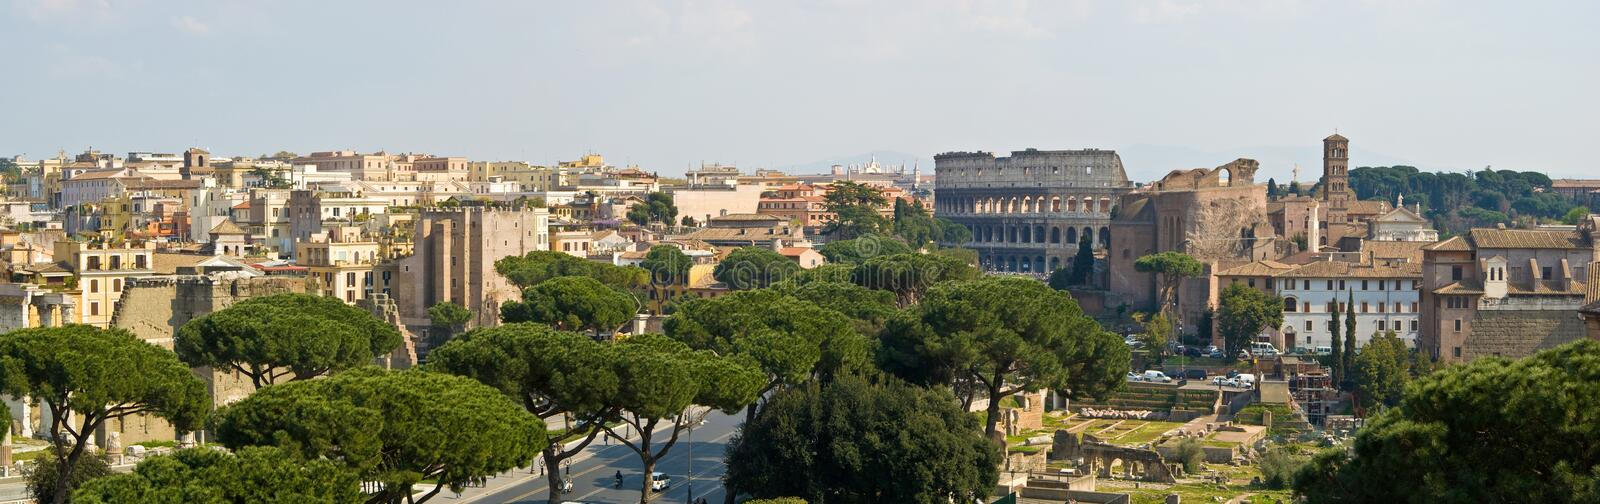 Download Rome and the Colosseum stock photo. Image of european - 24330348